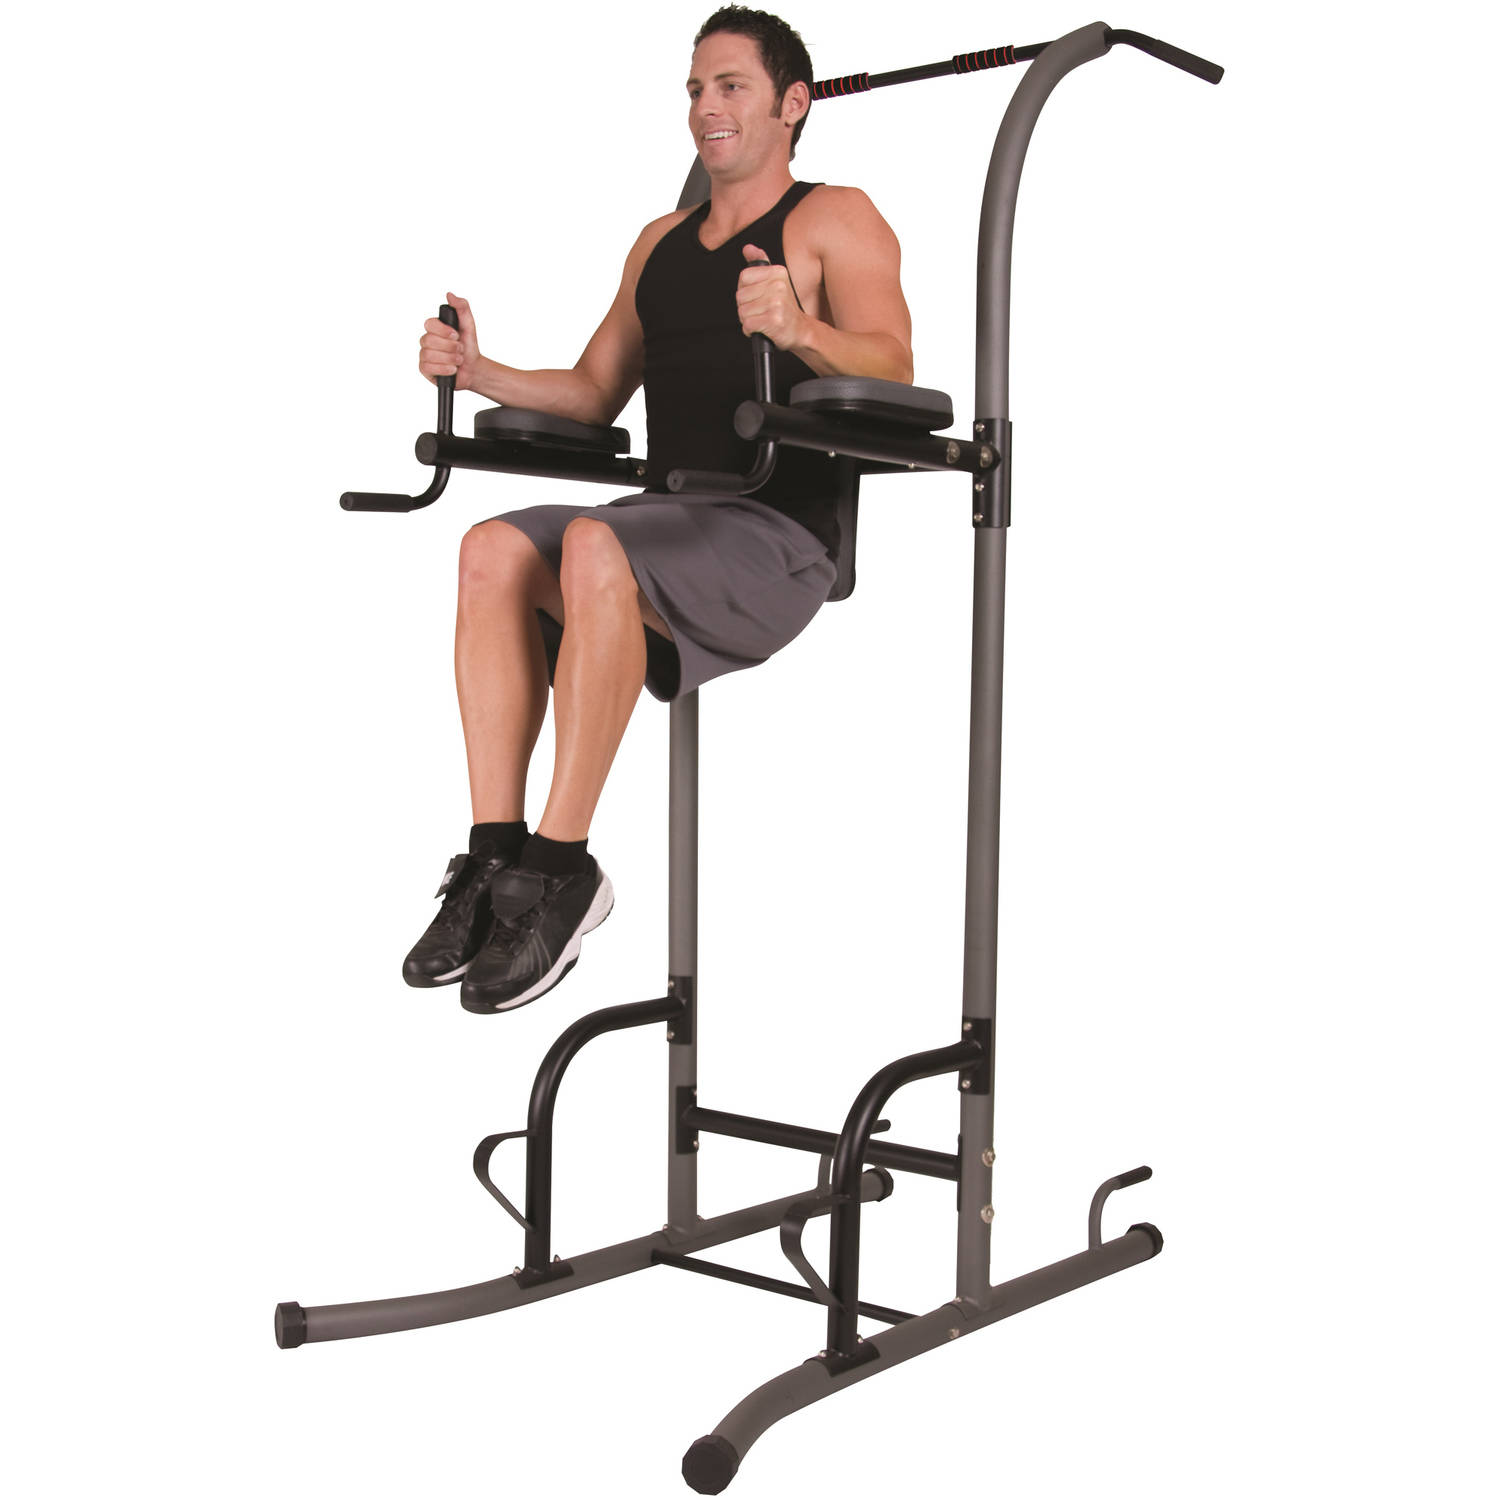 body power 5 station vkr power tower home gym for dips pull ups